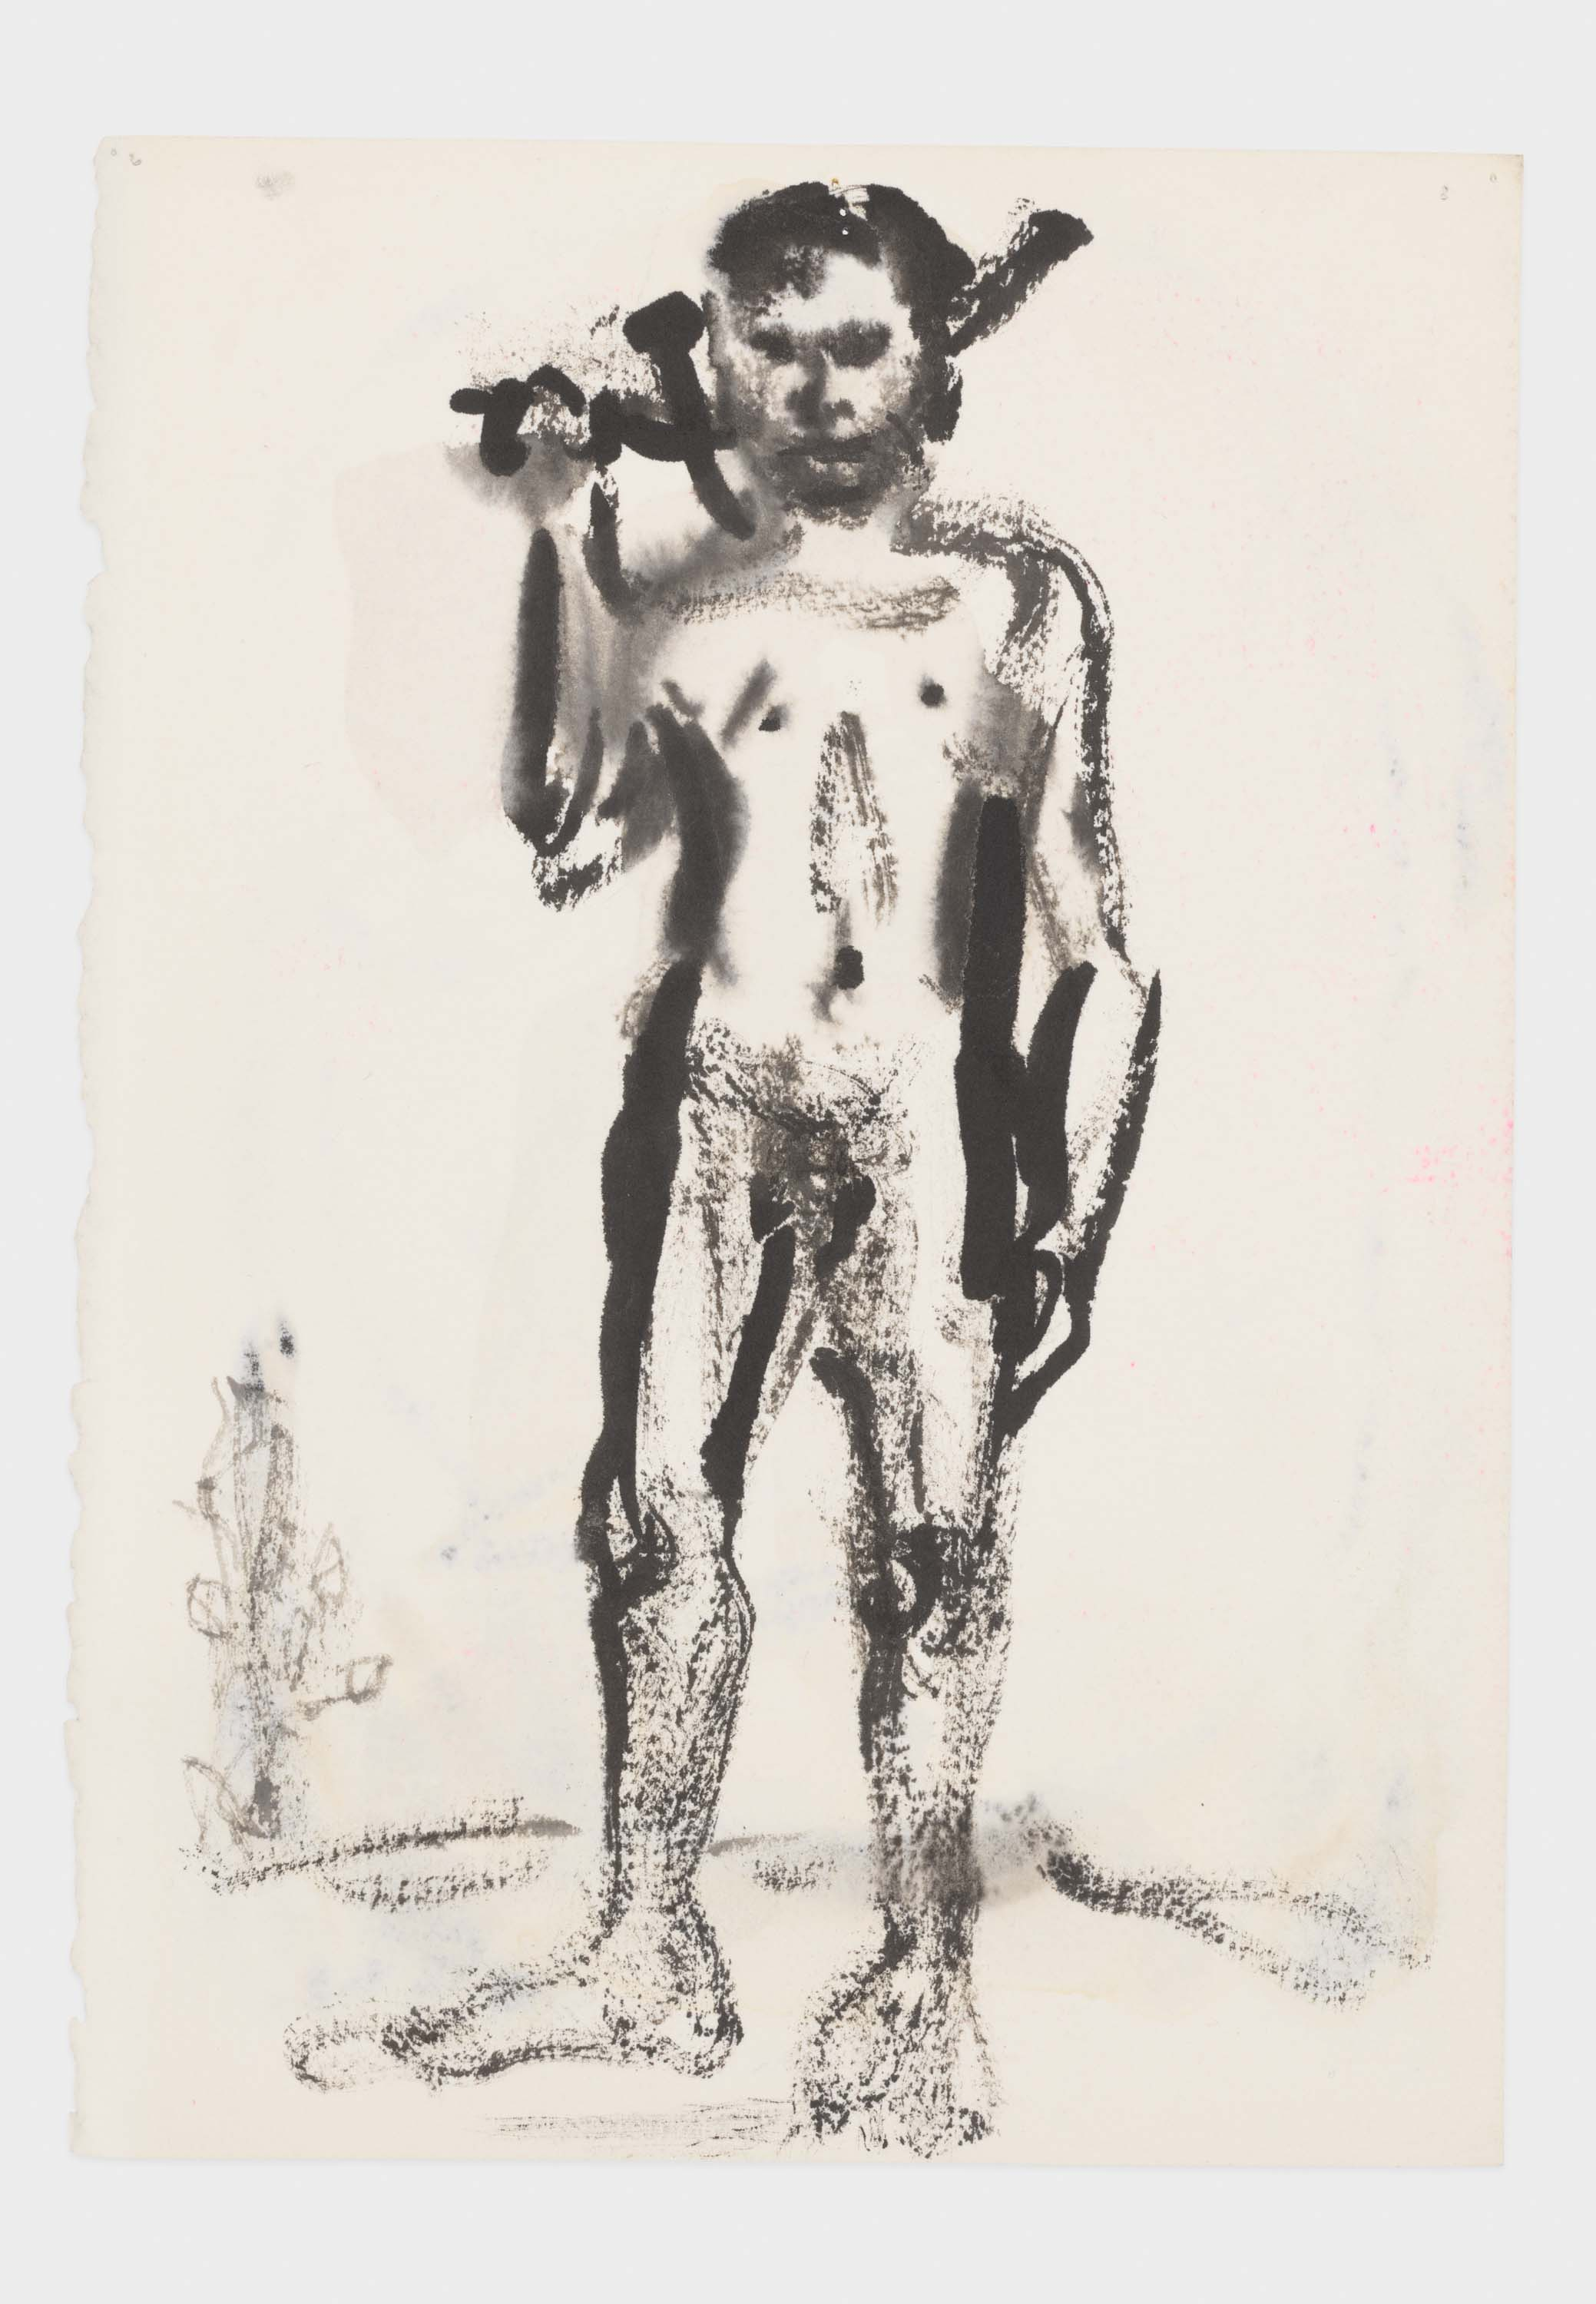 """Marlene Dumas, """"Adonis leaves for the hunt"""", 2015-2016, Ink wash and metallic acrylic on paper 11 1/2 x 8 1/8 inches 29 x 20.5 cm. Exposition """"Myths & Mortals"""", Galerie David Zwirner, New-York"""